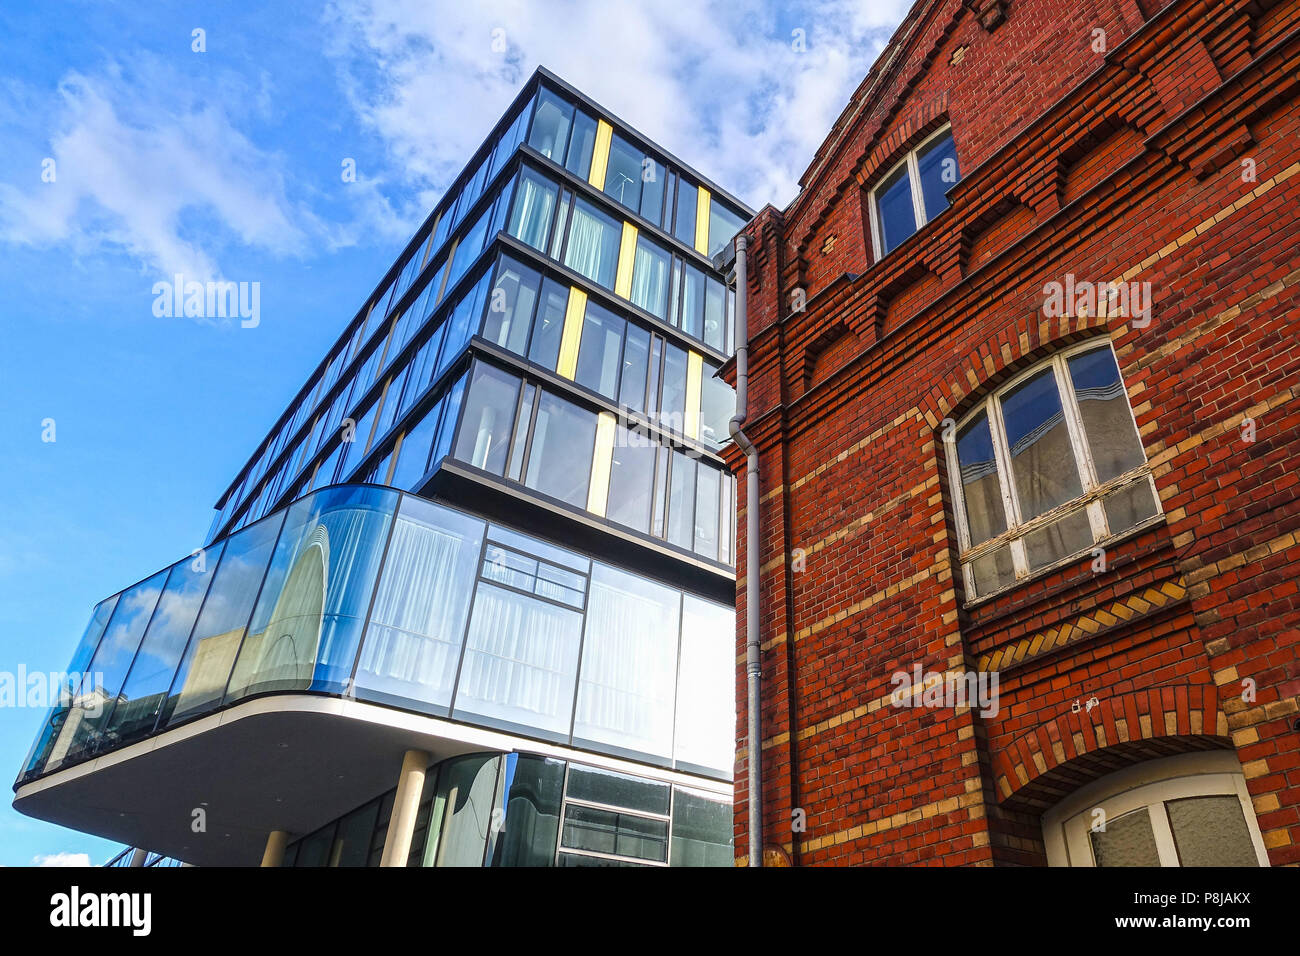 AACHEN, NRW / GERMANY - MARCH 29, 2018: Street view of the modern building of the AachenMuenchener insurance company, made by kadawittfeldarchitektur. - Stock Image